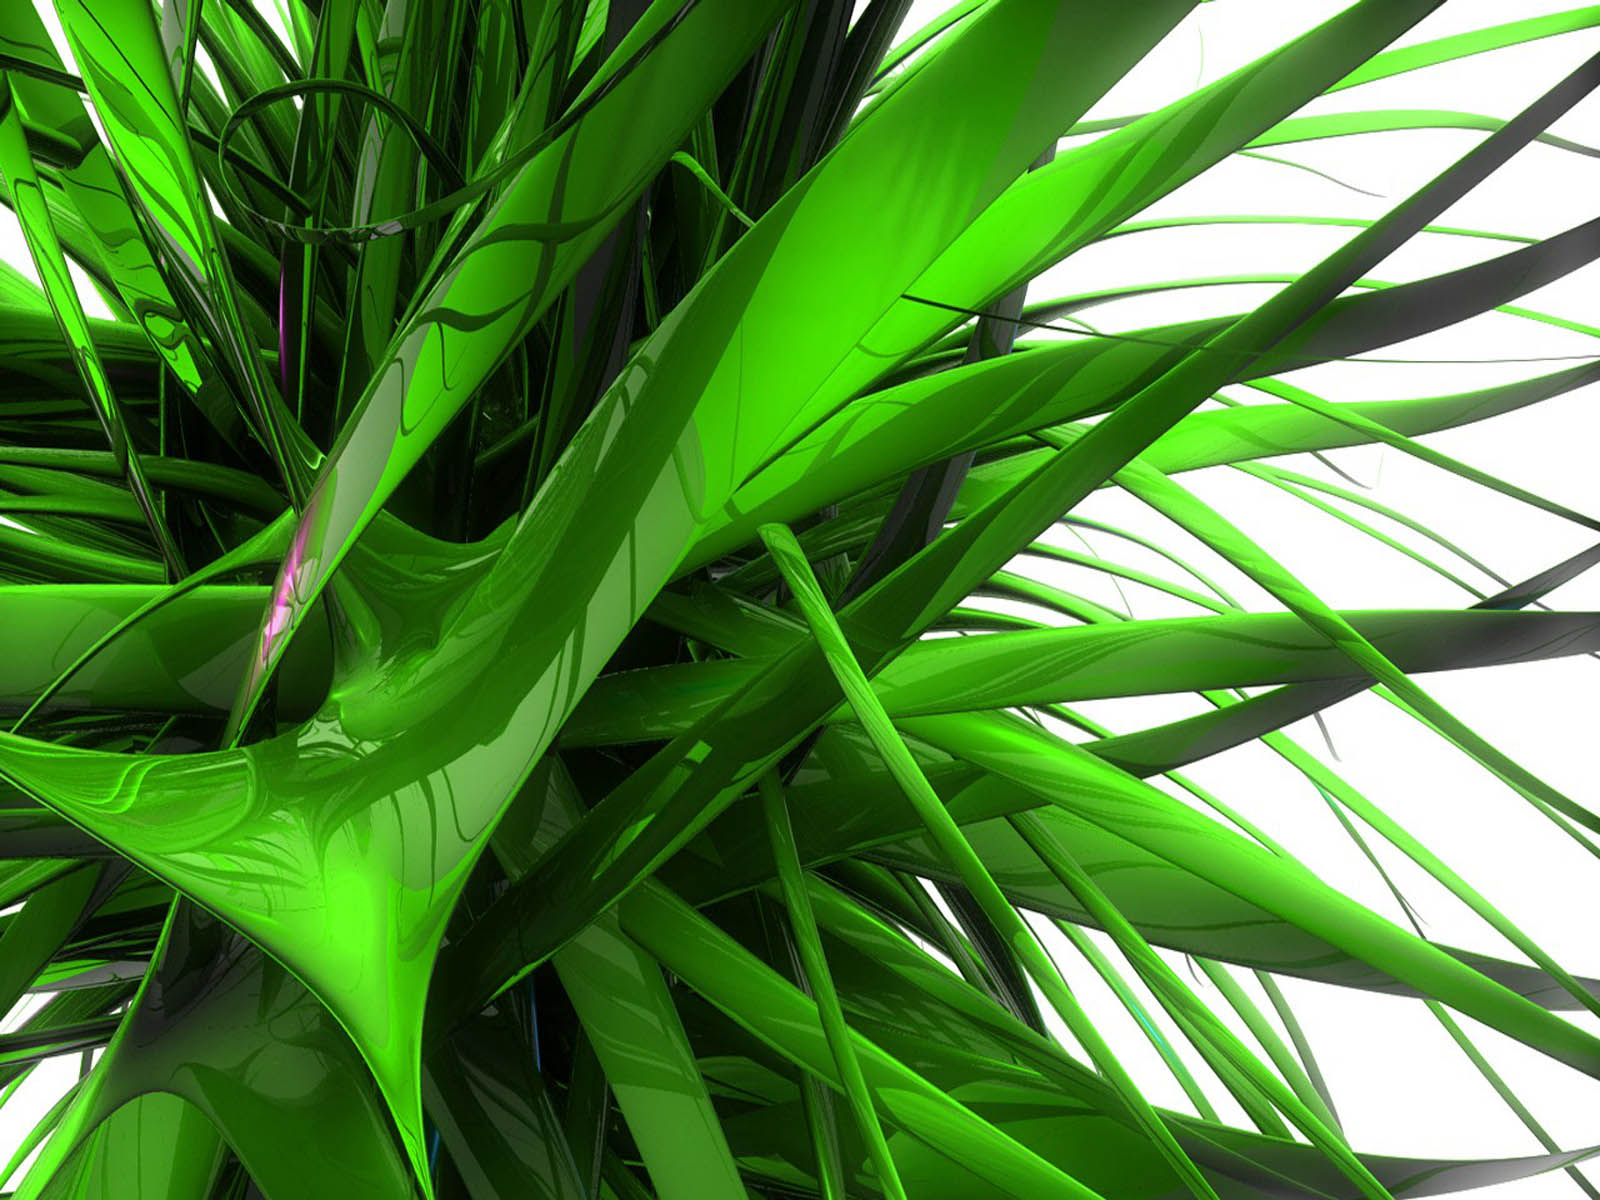 green background hd 3d - photo #27